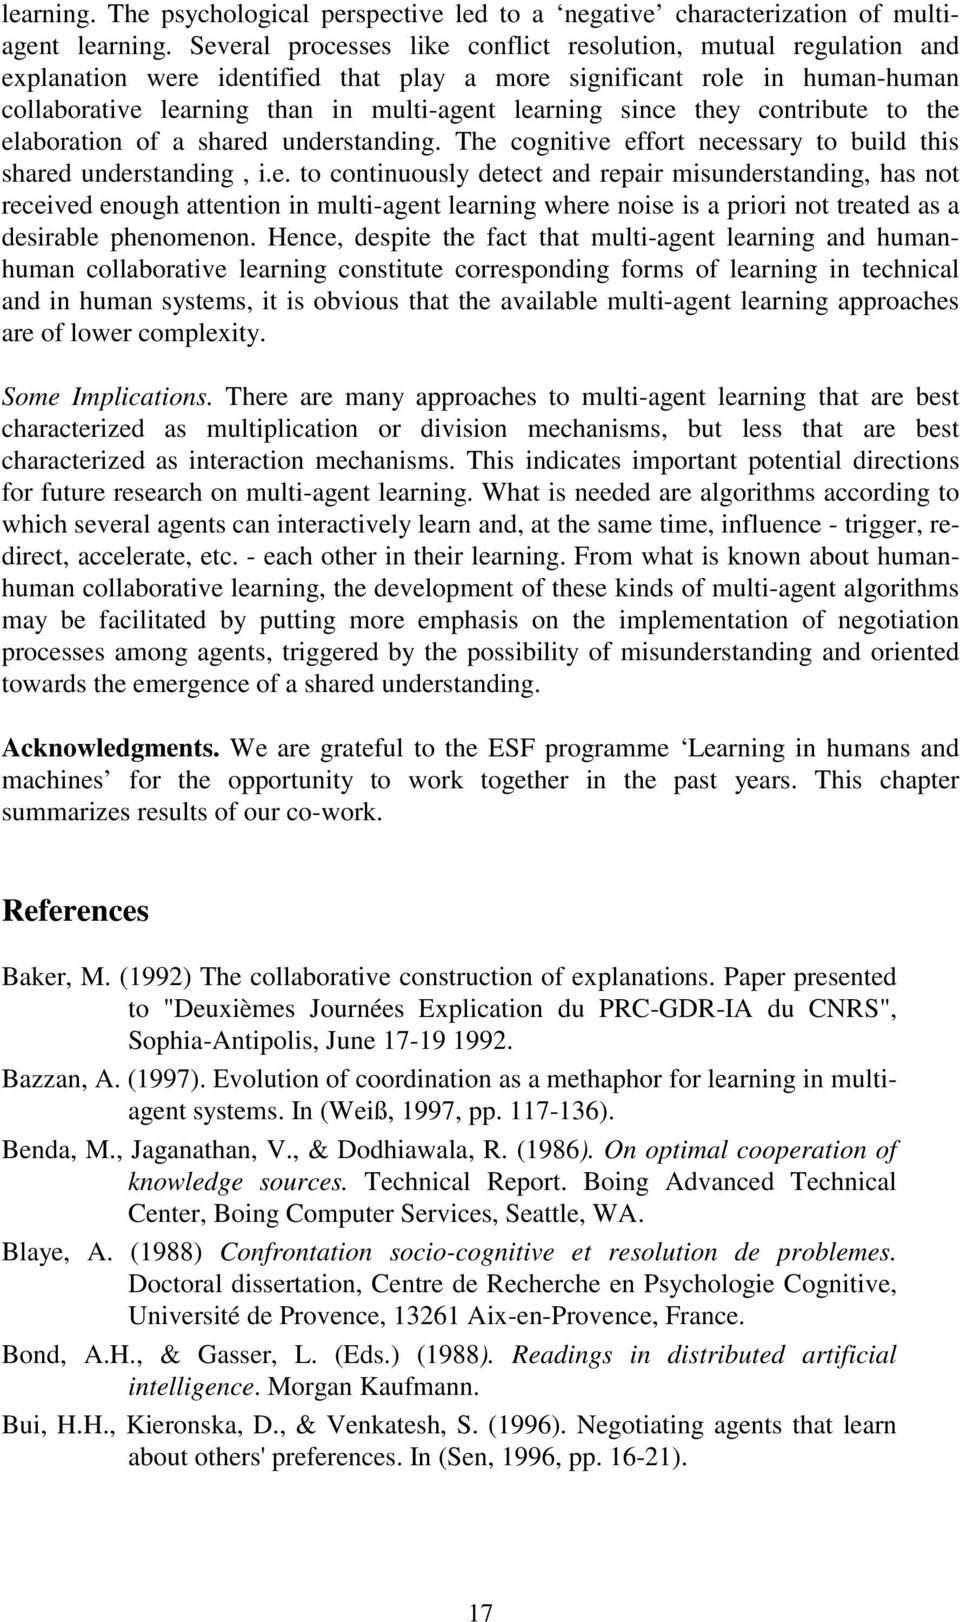 since they contribute to the elaboration of a shared understanding. The cognitive effort necessary to build this shared understanding, i.e. to continuously detect and repair misunderstanding, has not received enough attention in multi-agent learning where noise is a priori not treated as a desirable phenomenon.